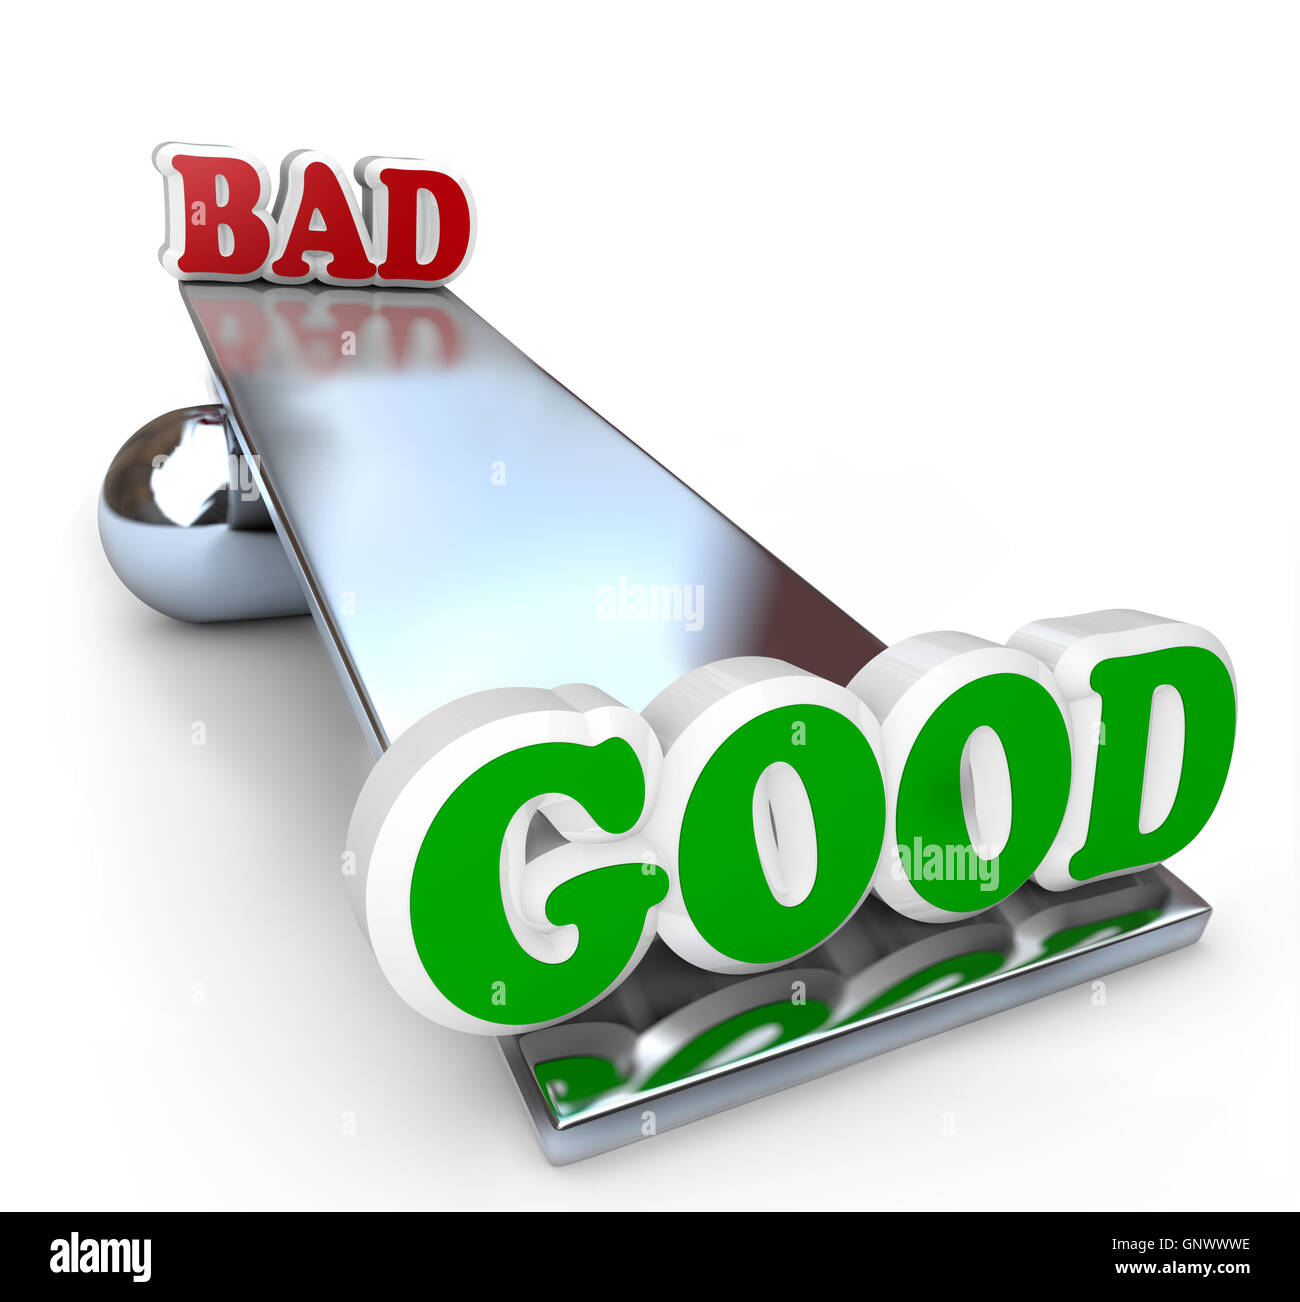 Good vs Bad Comparison on Balance Weighing Differences - Stock Image